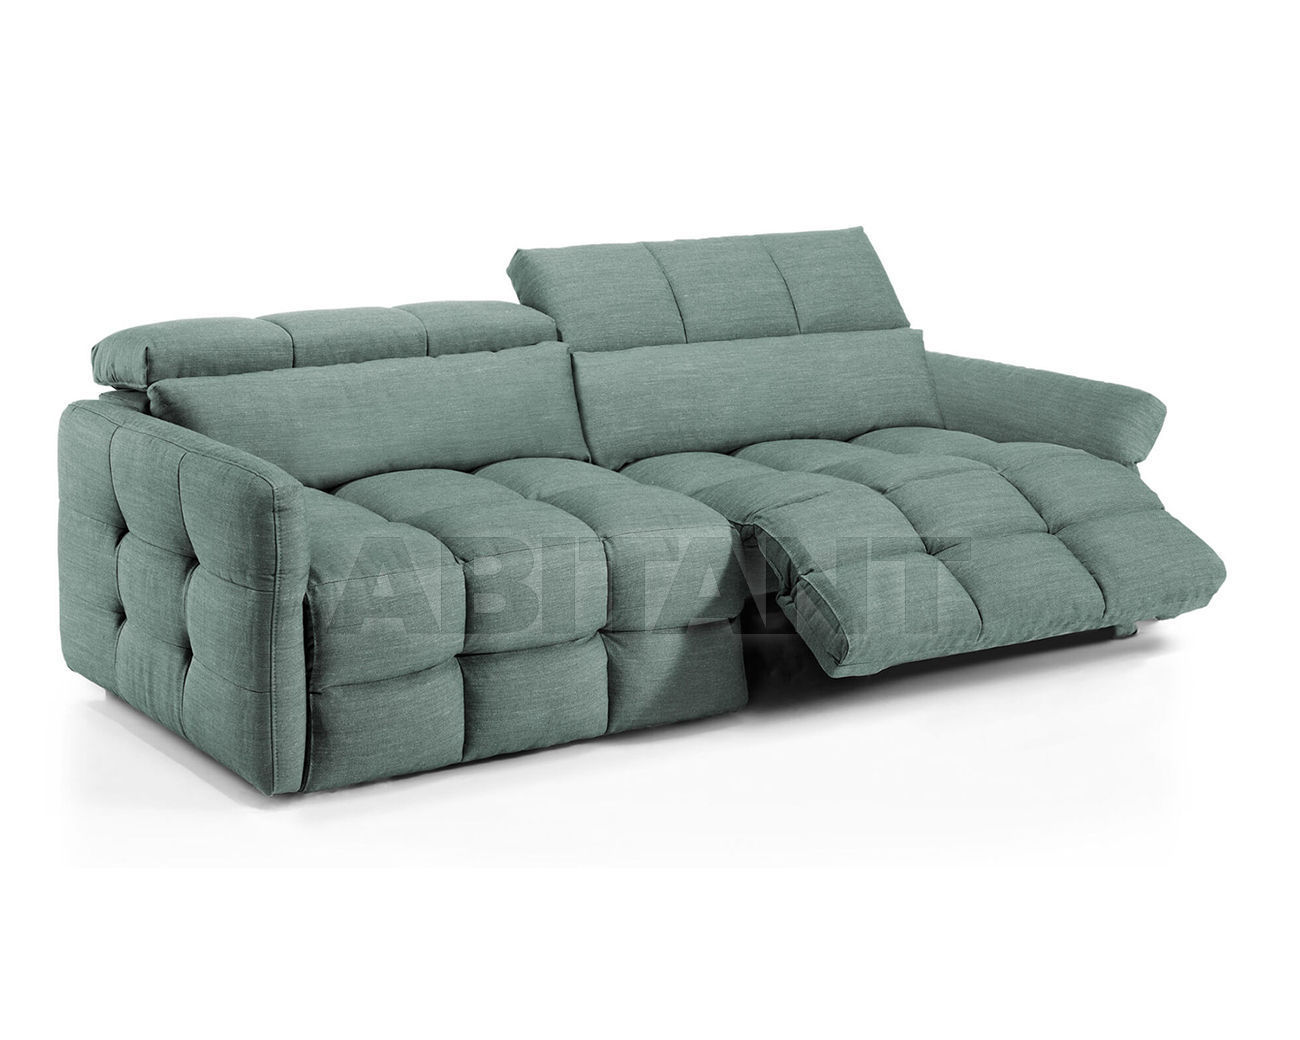 Buy Sofa Moradillo Sofa LEX